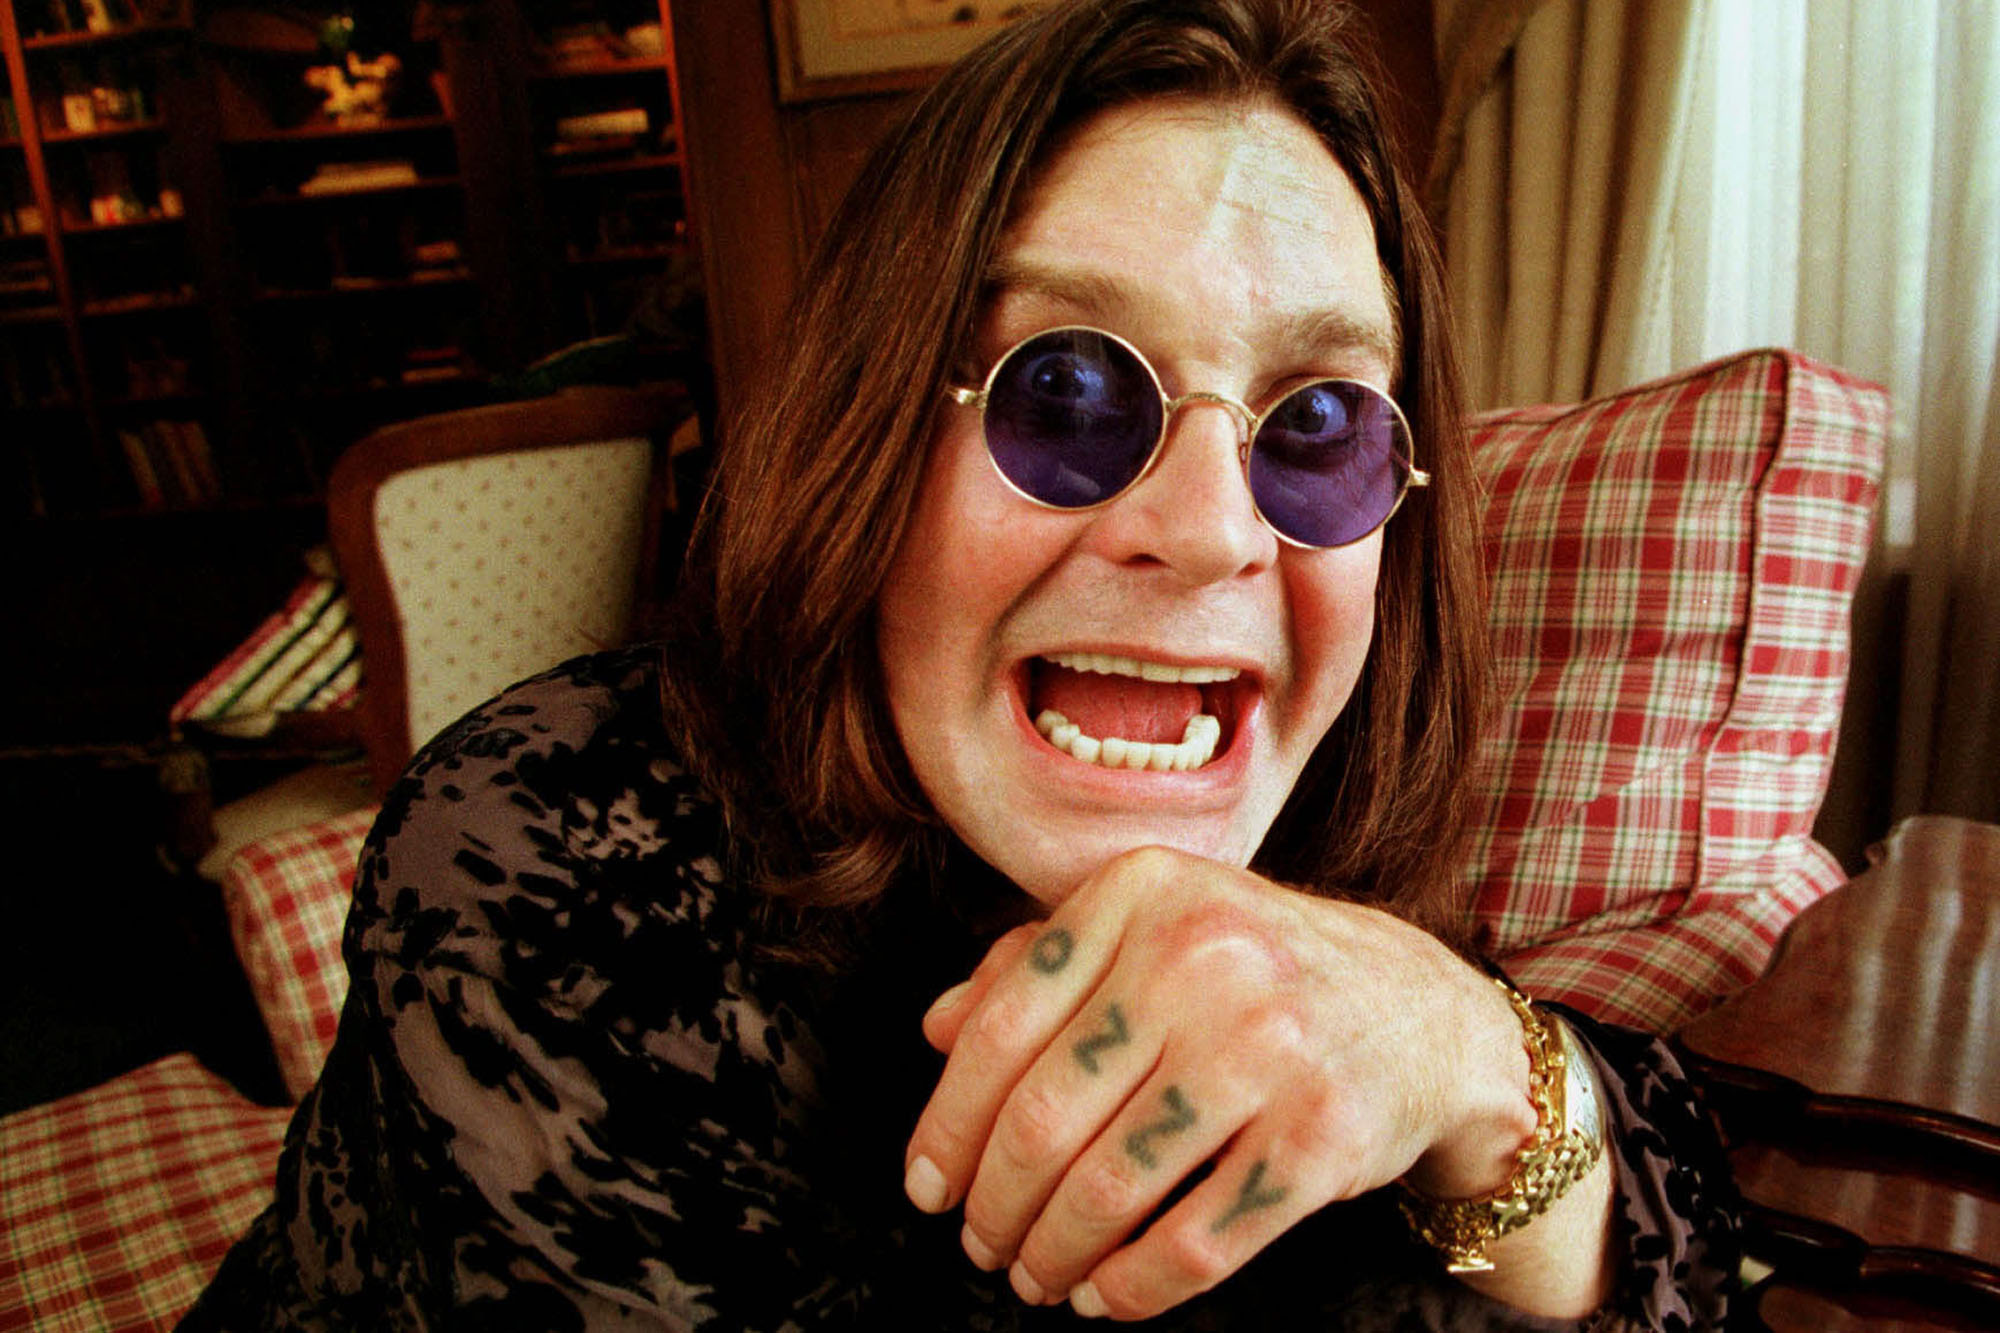 Ozzy Osbourne is a genetic mutant, DNA research proves